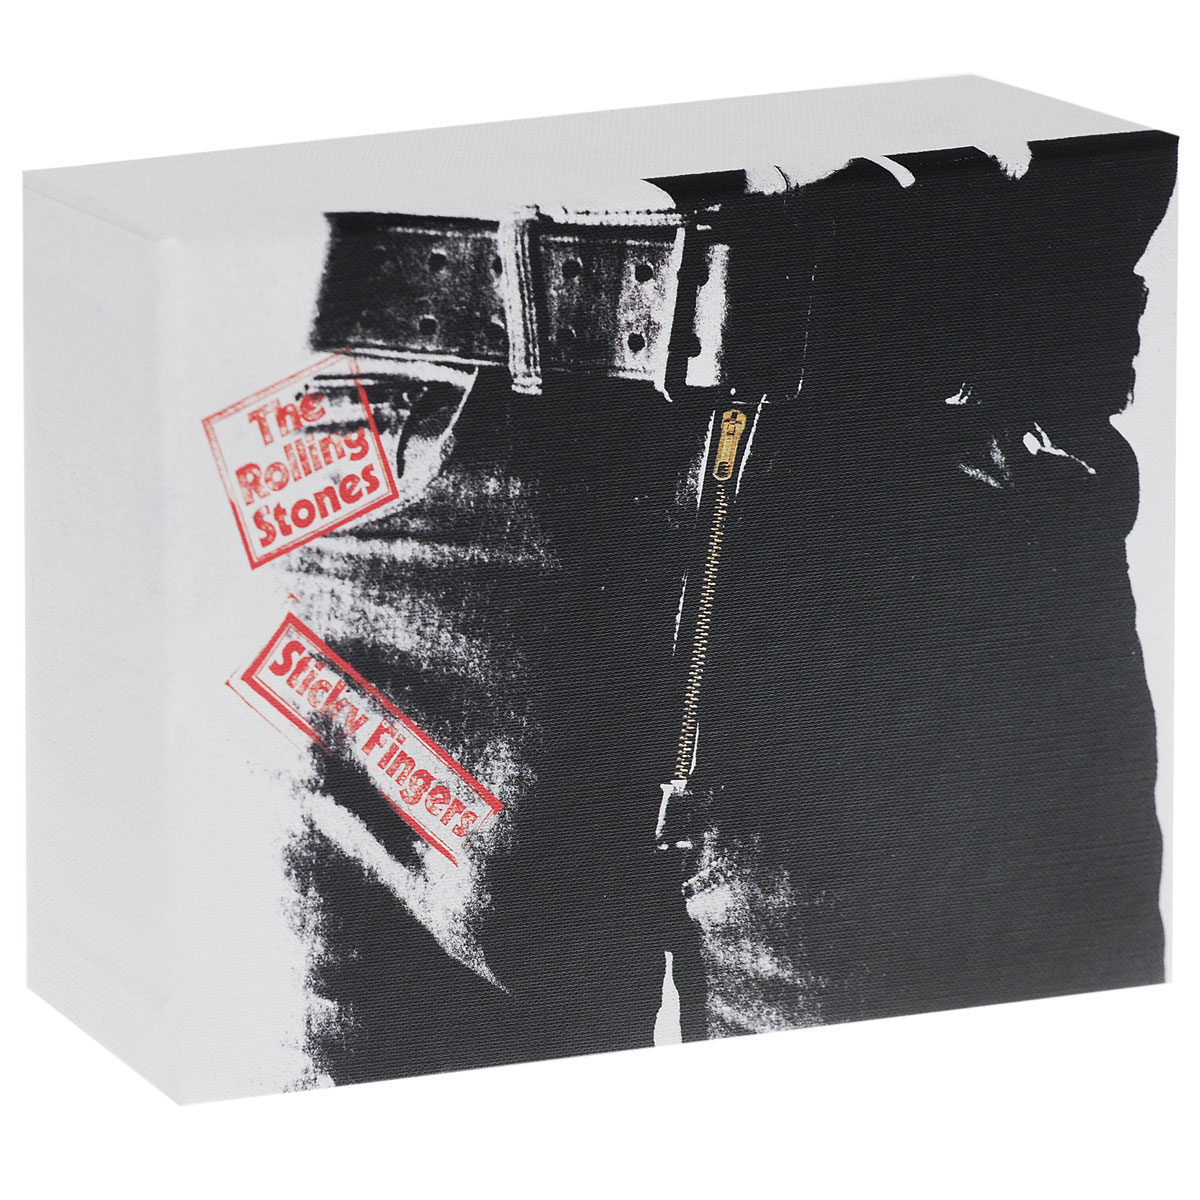 The Rolling Stones The Rolling Stones. Sticky Fingers (3 CD + DVD + LP) 9 inch car headrest mount dvd player digital multimedia player hdmi 800 x 480 lcd screen audio video usb speaker remote control